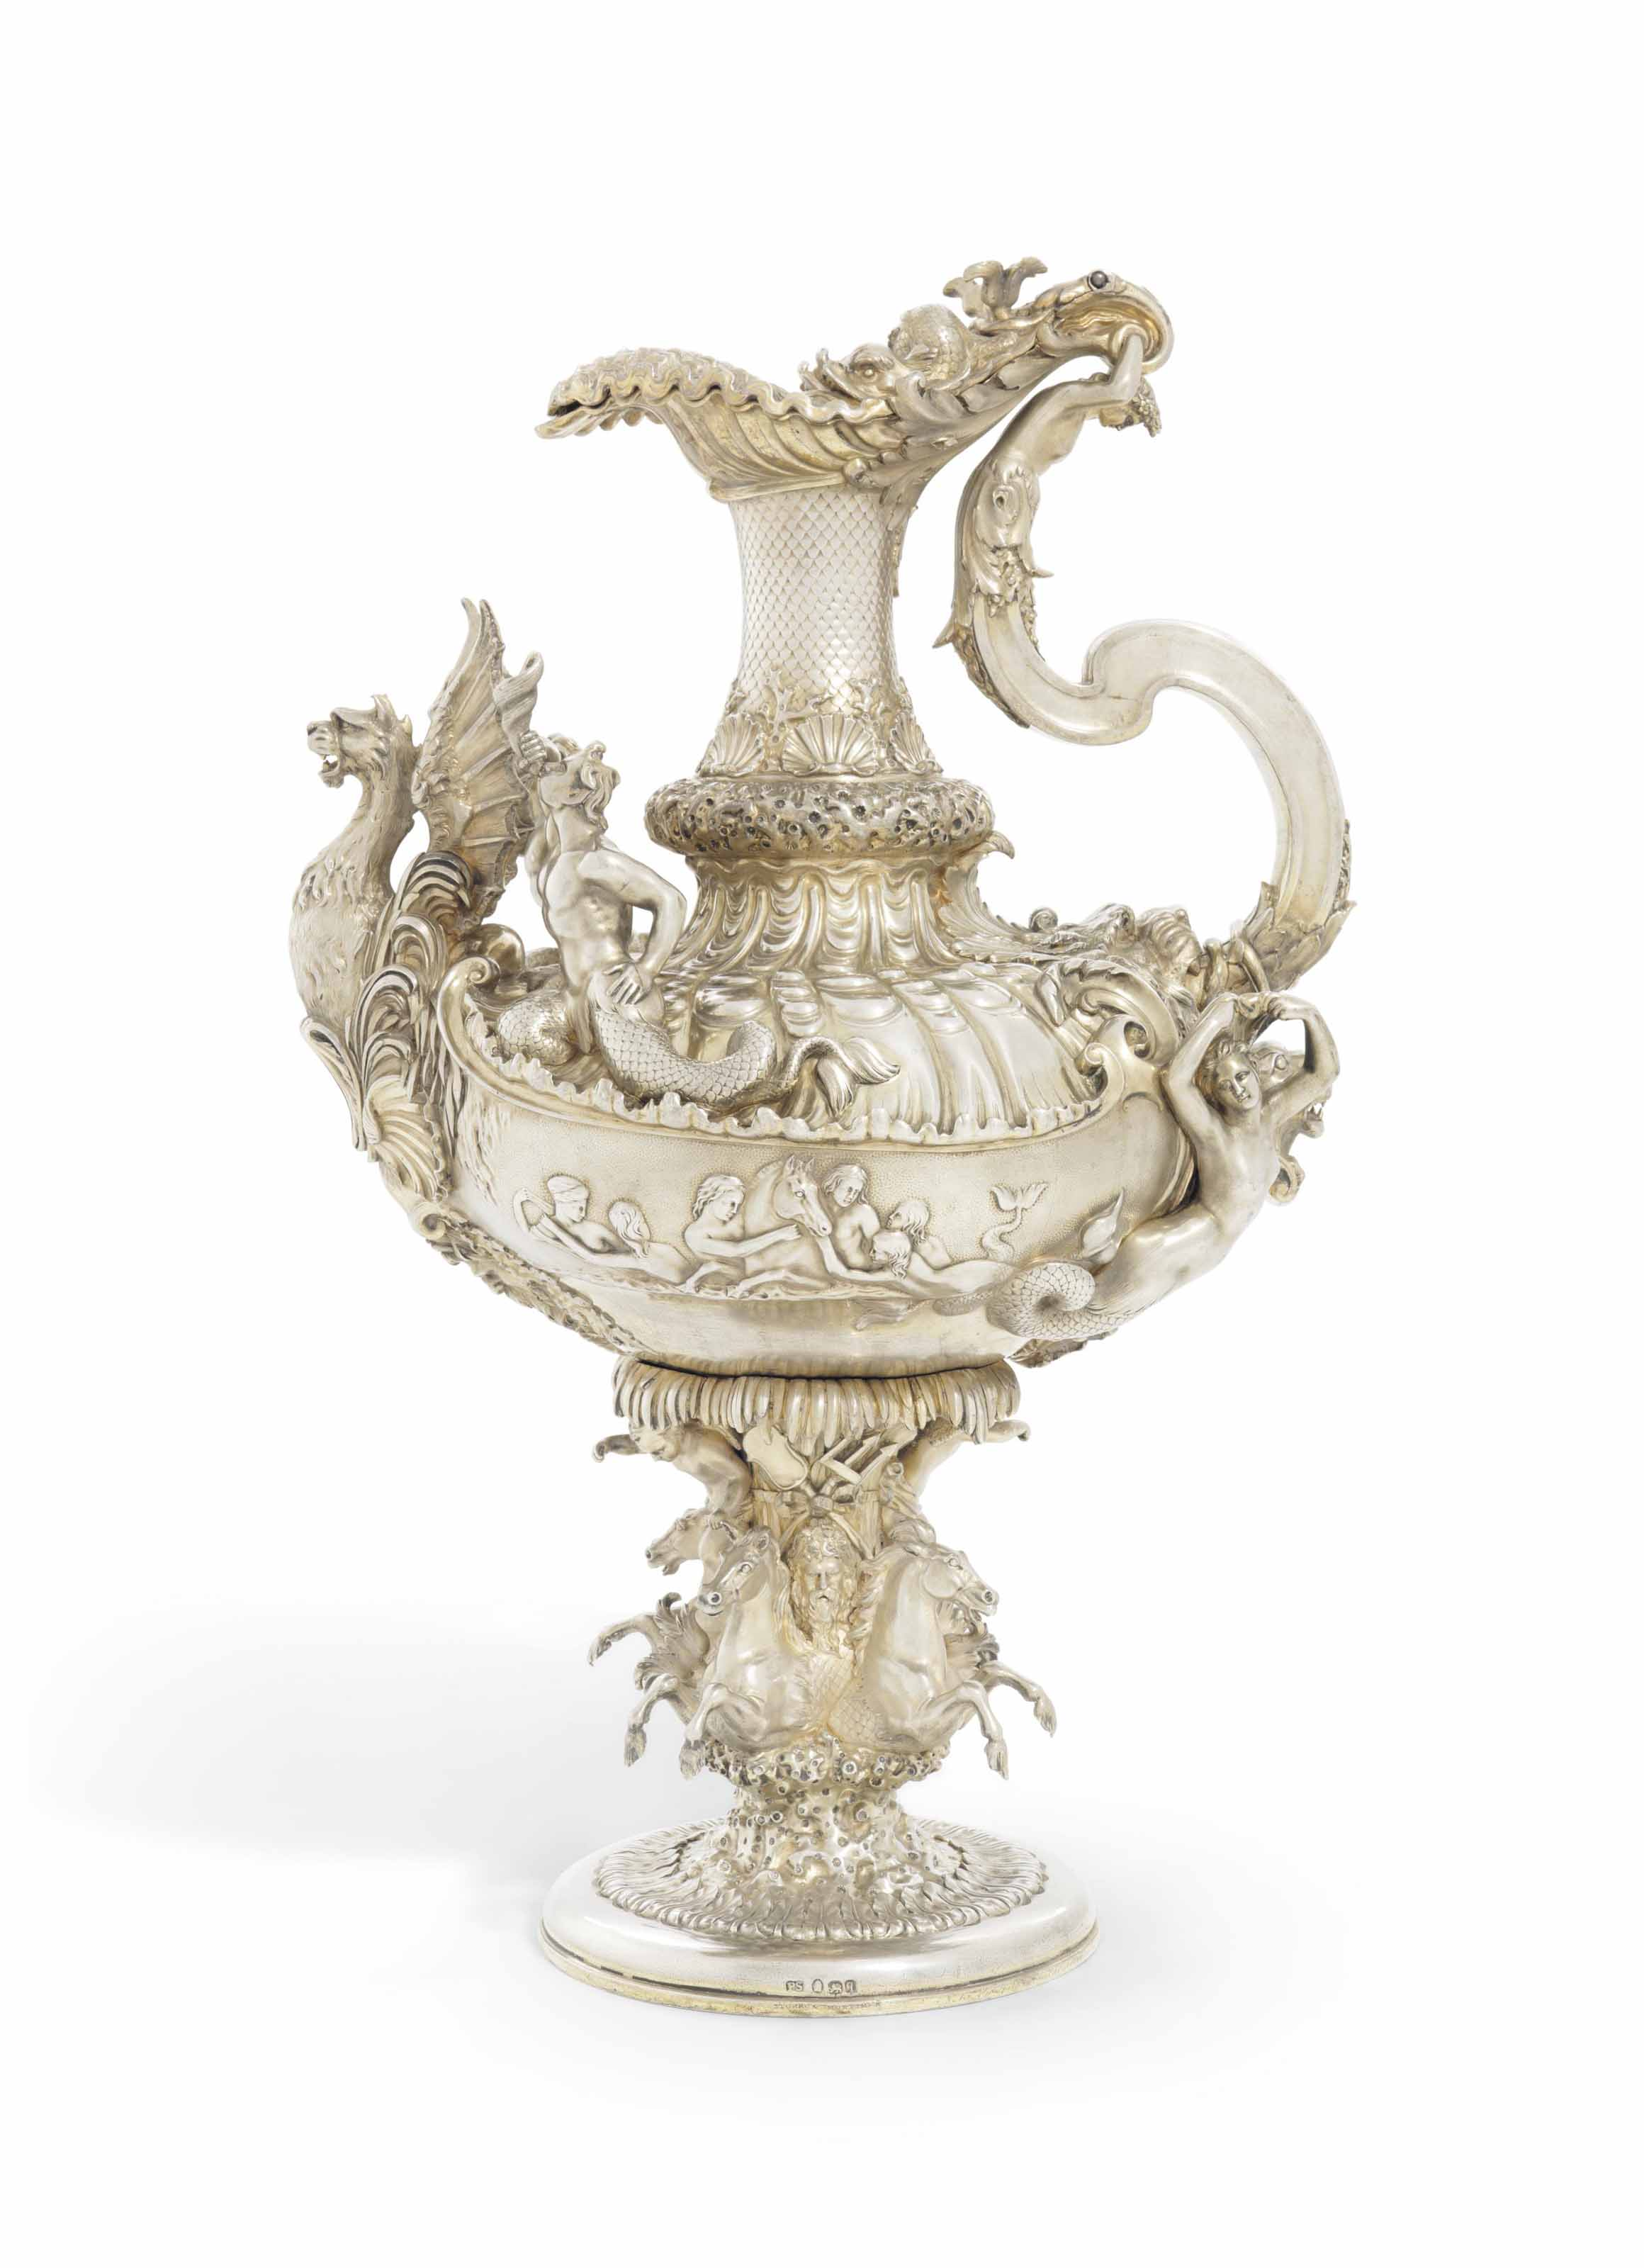 A WILLIAM IV SILVER-GILT EWER FROM THE EGYPTIAN ROYAL COLLECTION